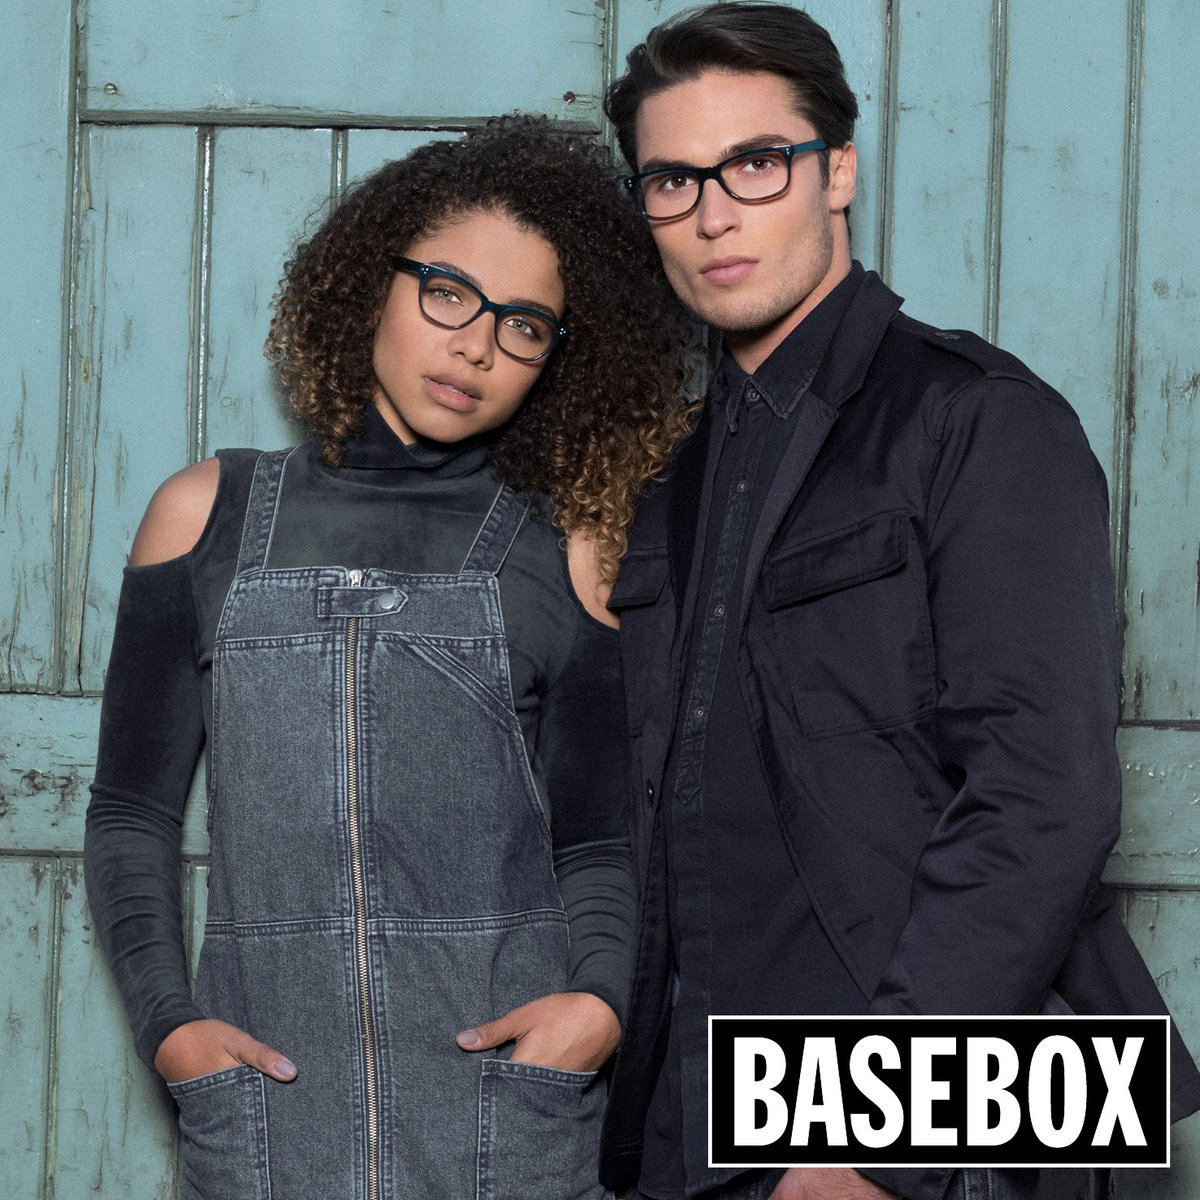 Go sharper, smarter, bolder with the Basebox collection. Discover more at  http:// bit.ly/BaseBox  &nbsp;   #Basebox #Eyewear #Fashion #Glasses #Style<br>http://pic.twitter.com/5uzjNjlg2S